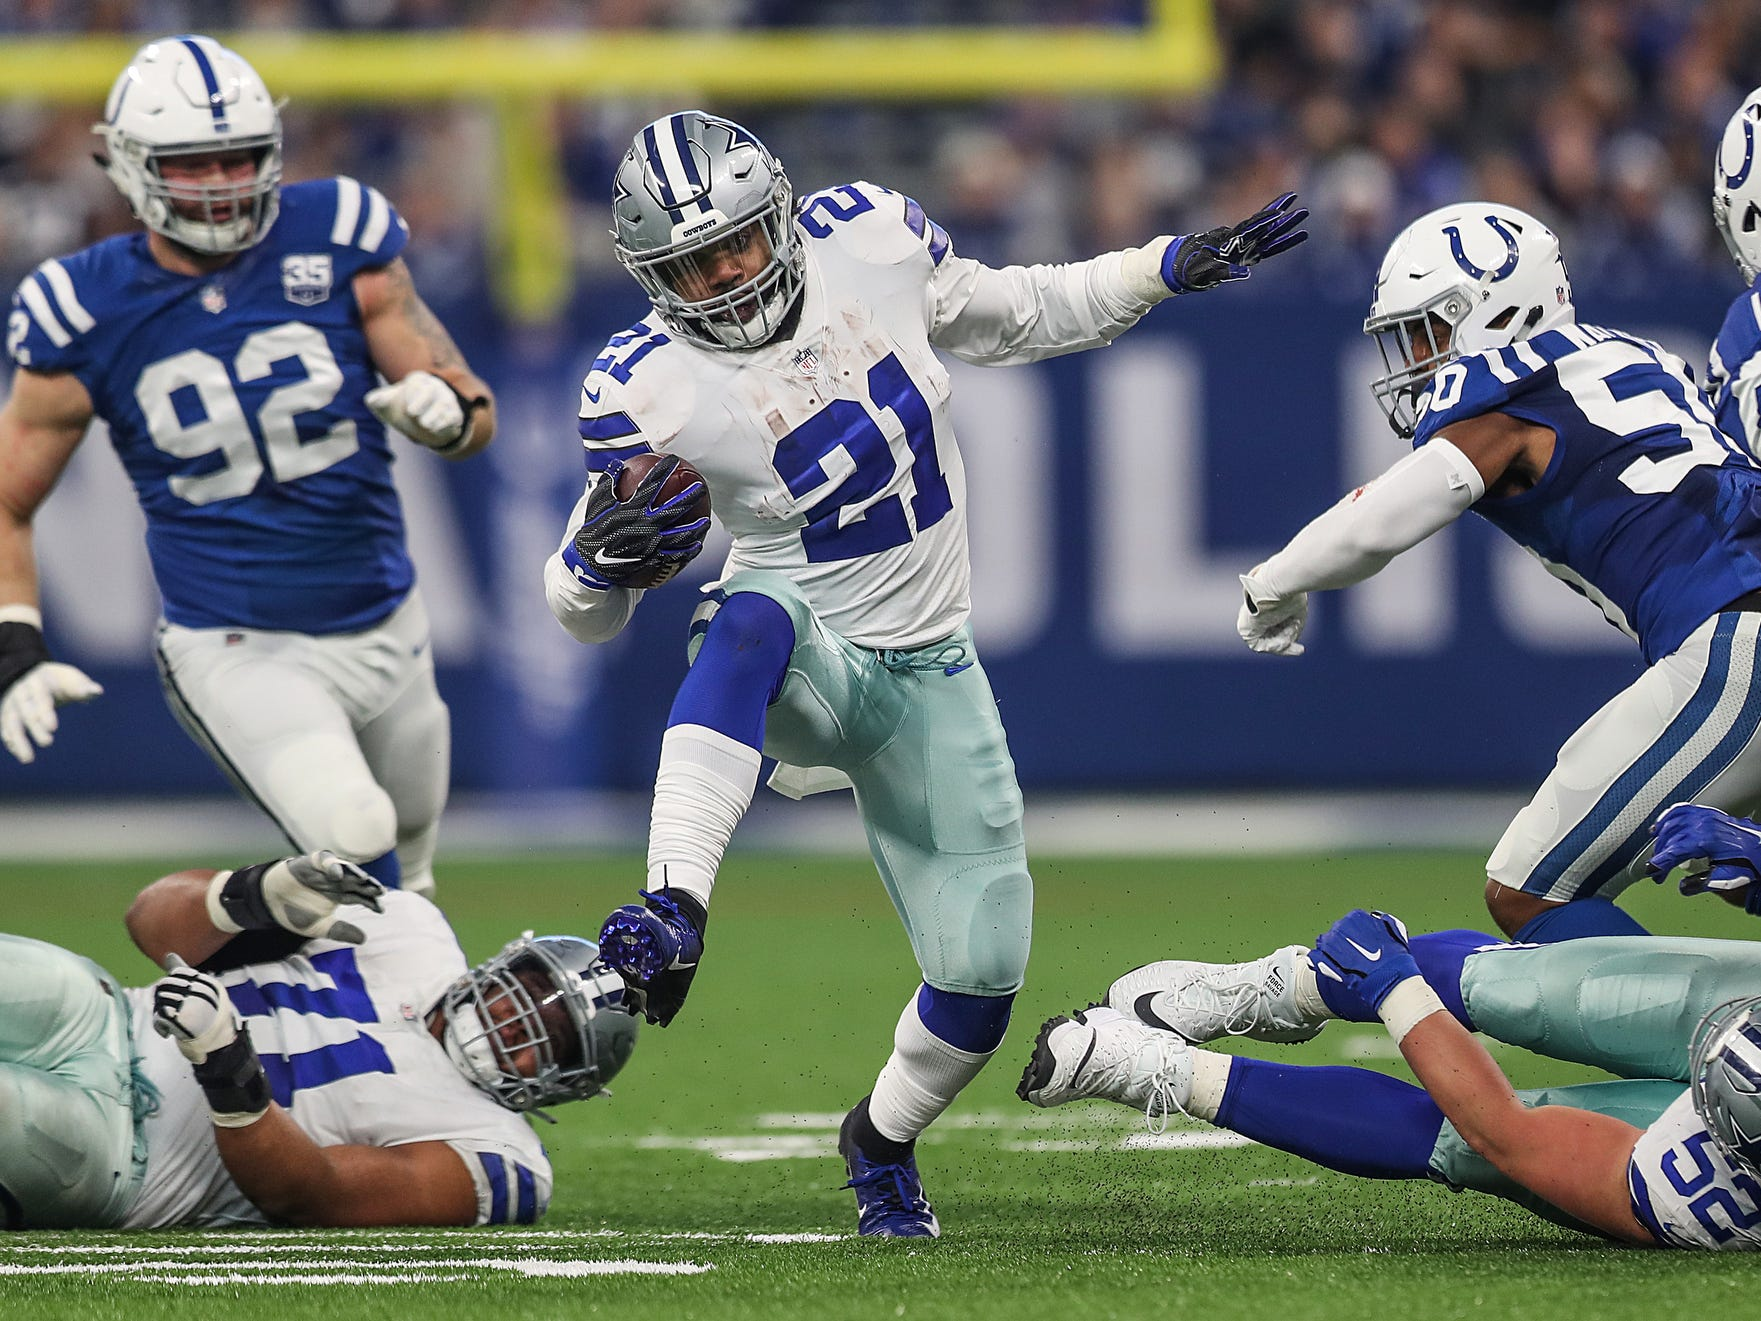 Indianapolis Colts running back Nyheim Hines (21) weaves through Dallas defenders in the first half of the game at Lucas Oil Stadium in Indianapolis, Sunday, Dec. 16, 2018.